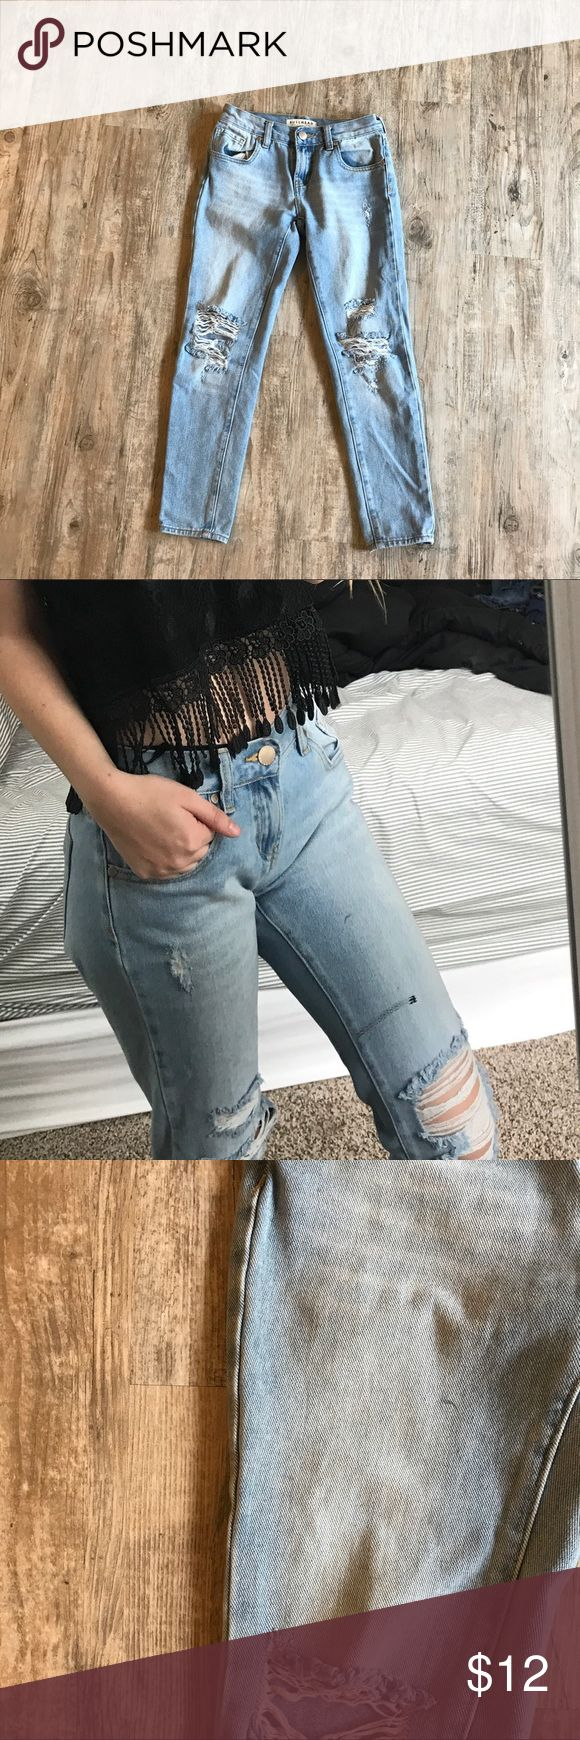 Pacsun Boyfriend Jeans Boyfriend jeans from pacsun (Bullhead),  they are in perfect condition other than a very small mark on one of the legs (third pic) it's not very noticeable but selling them cheap because of it. PacSun Jeans Boyfriend